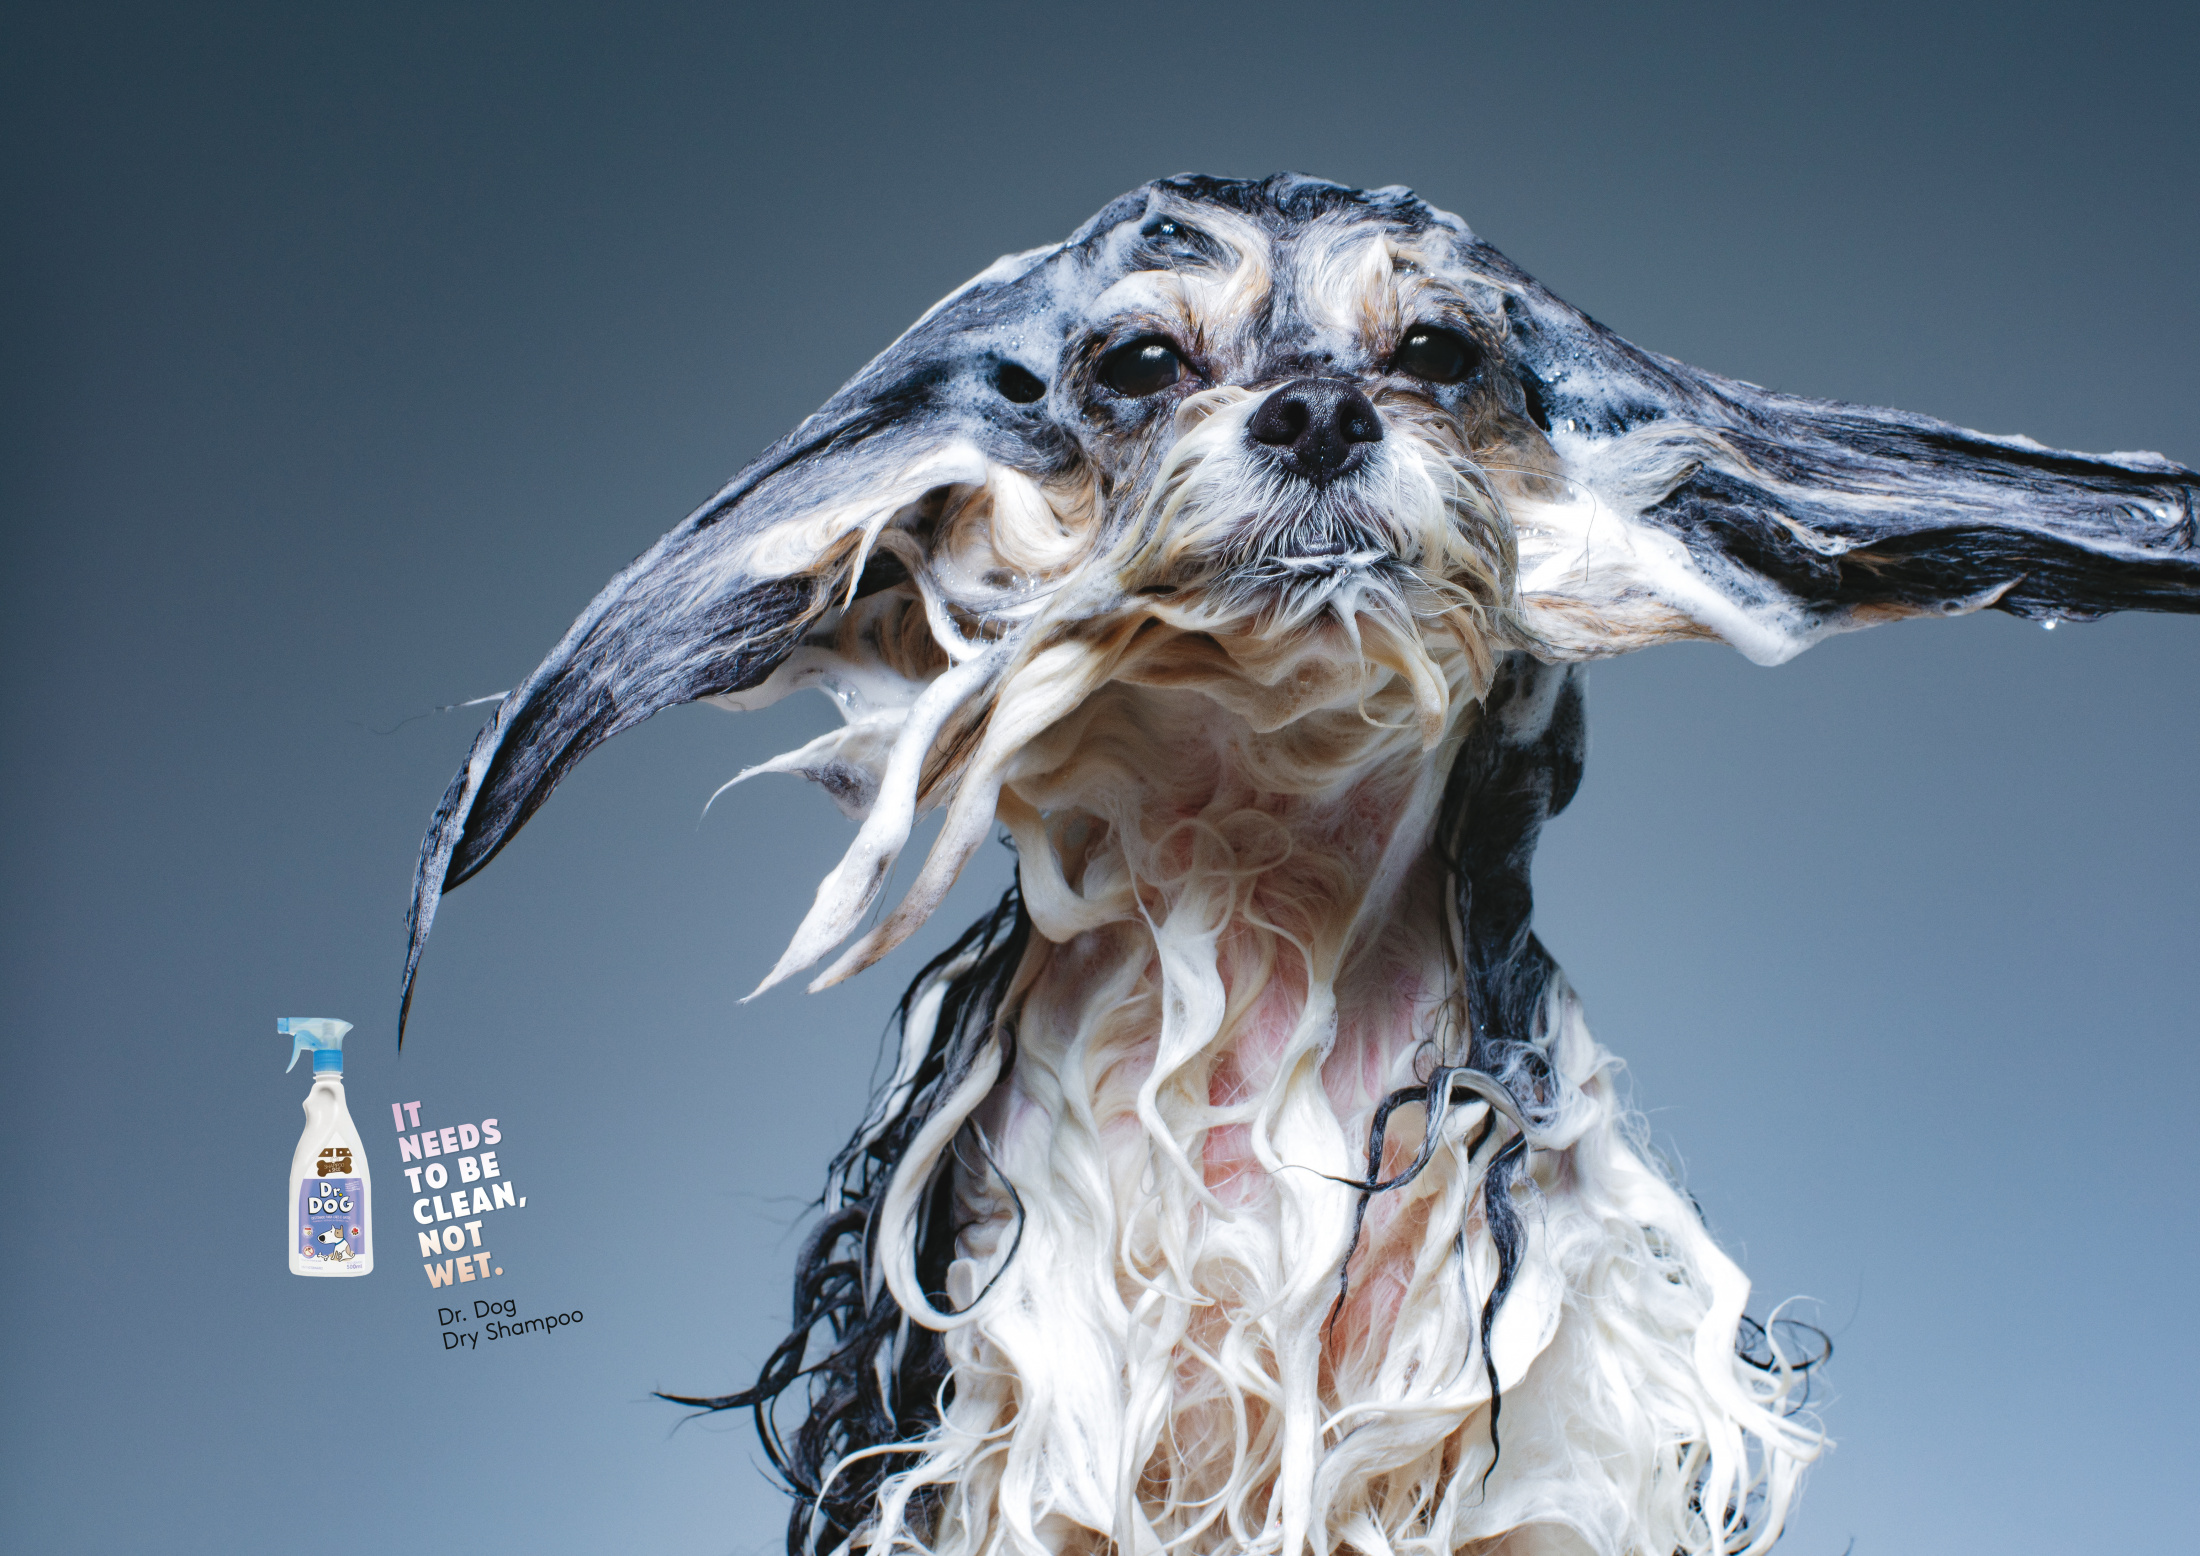 Image Media for Wet Dogs 3